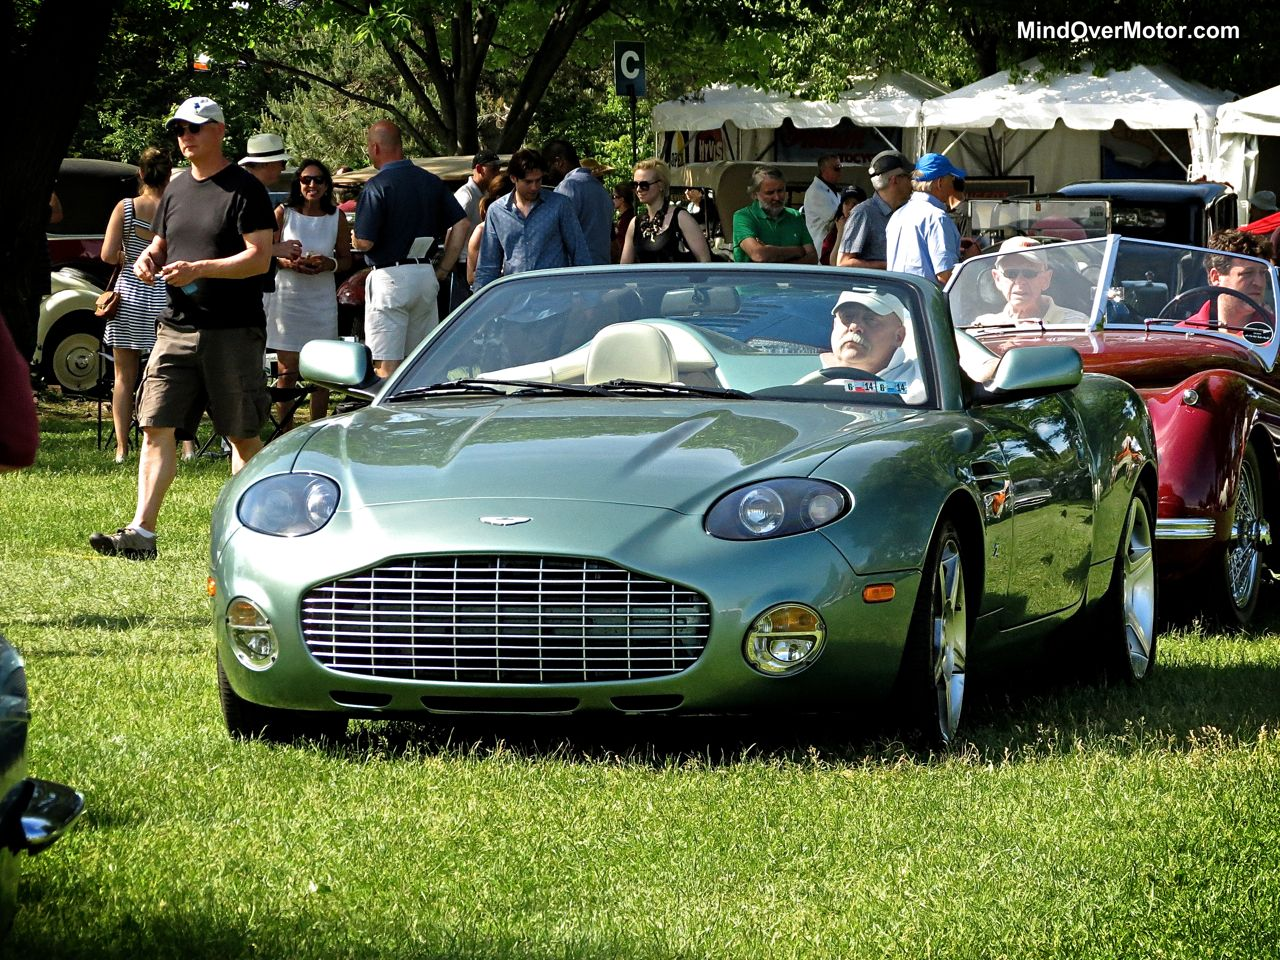 Aston Martin DBAR1 Zagato at the Greenwich Concours